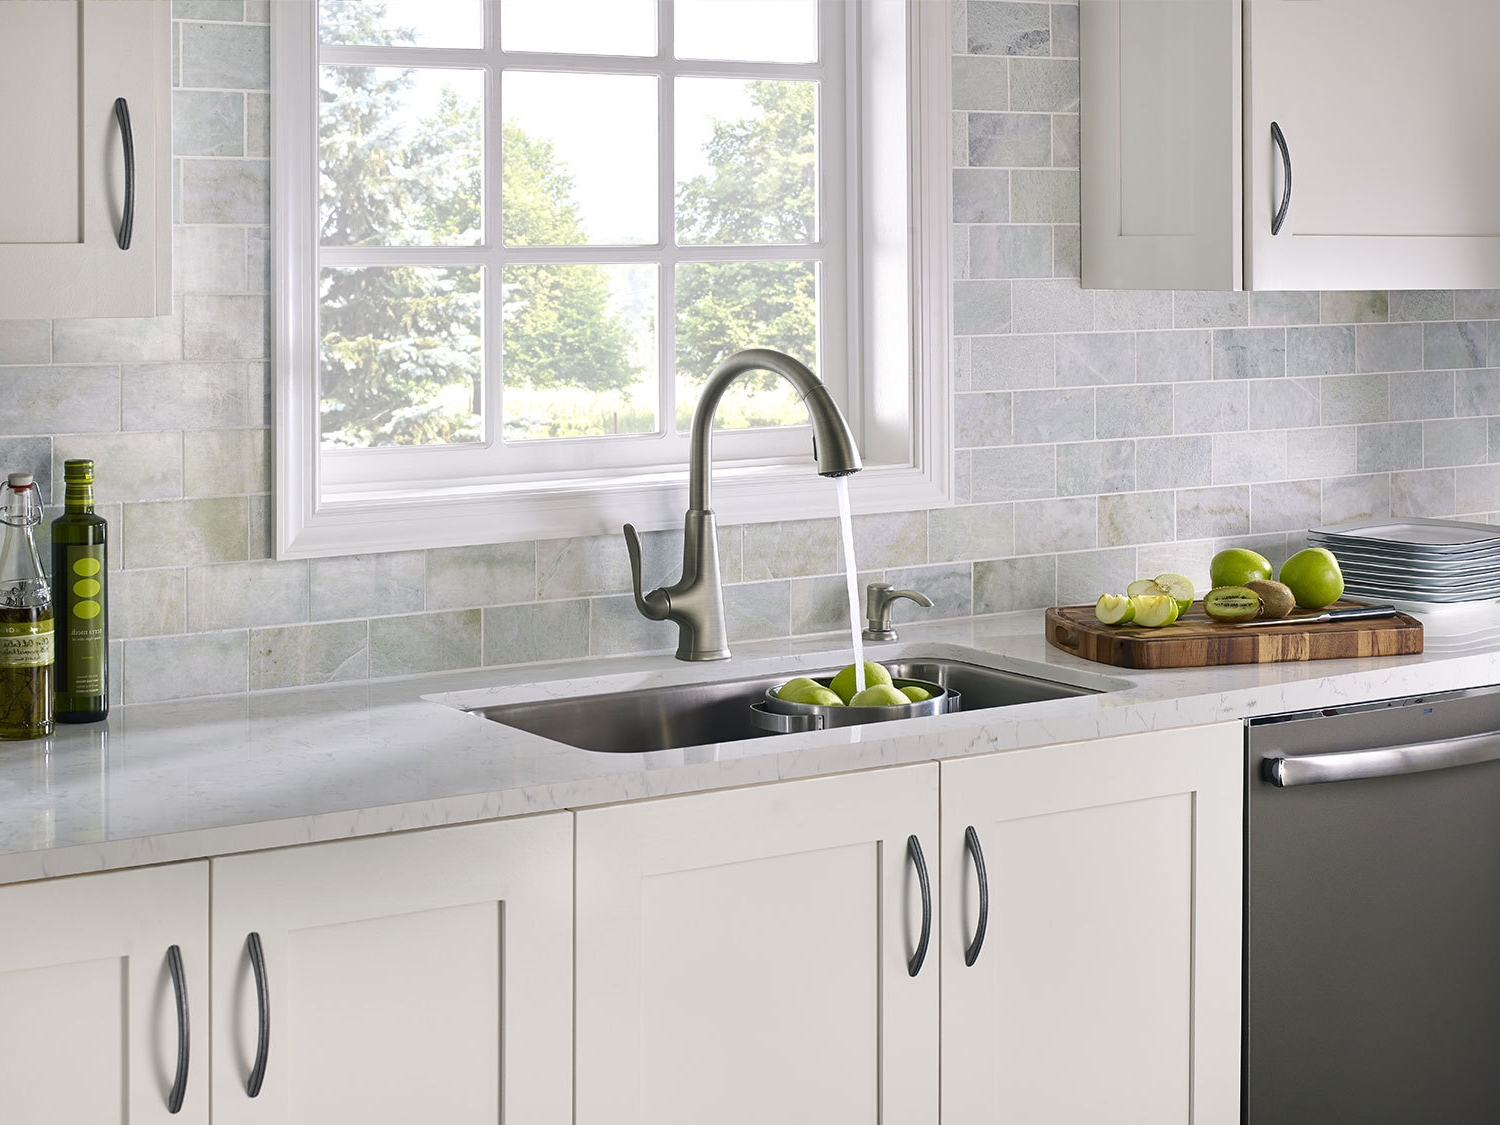 fancy countertops in kitchen in pale tones, with white cupboards, and a metal sink, pale blue brick wall with window, green apples and kiwis